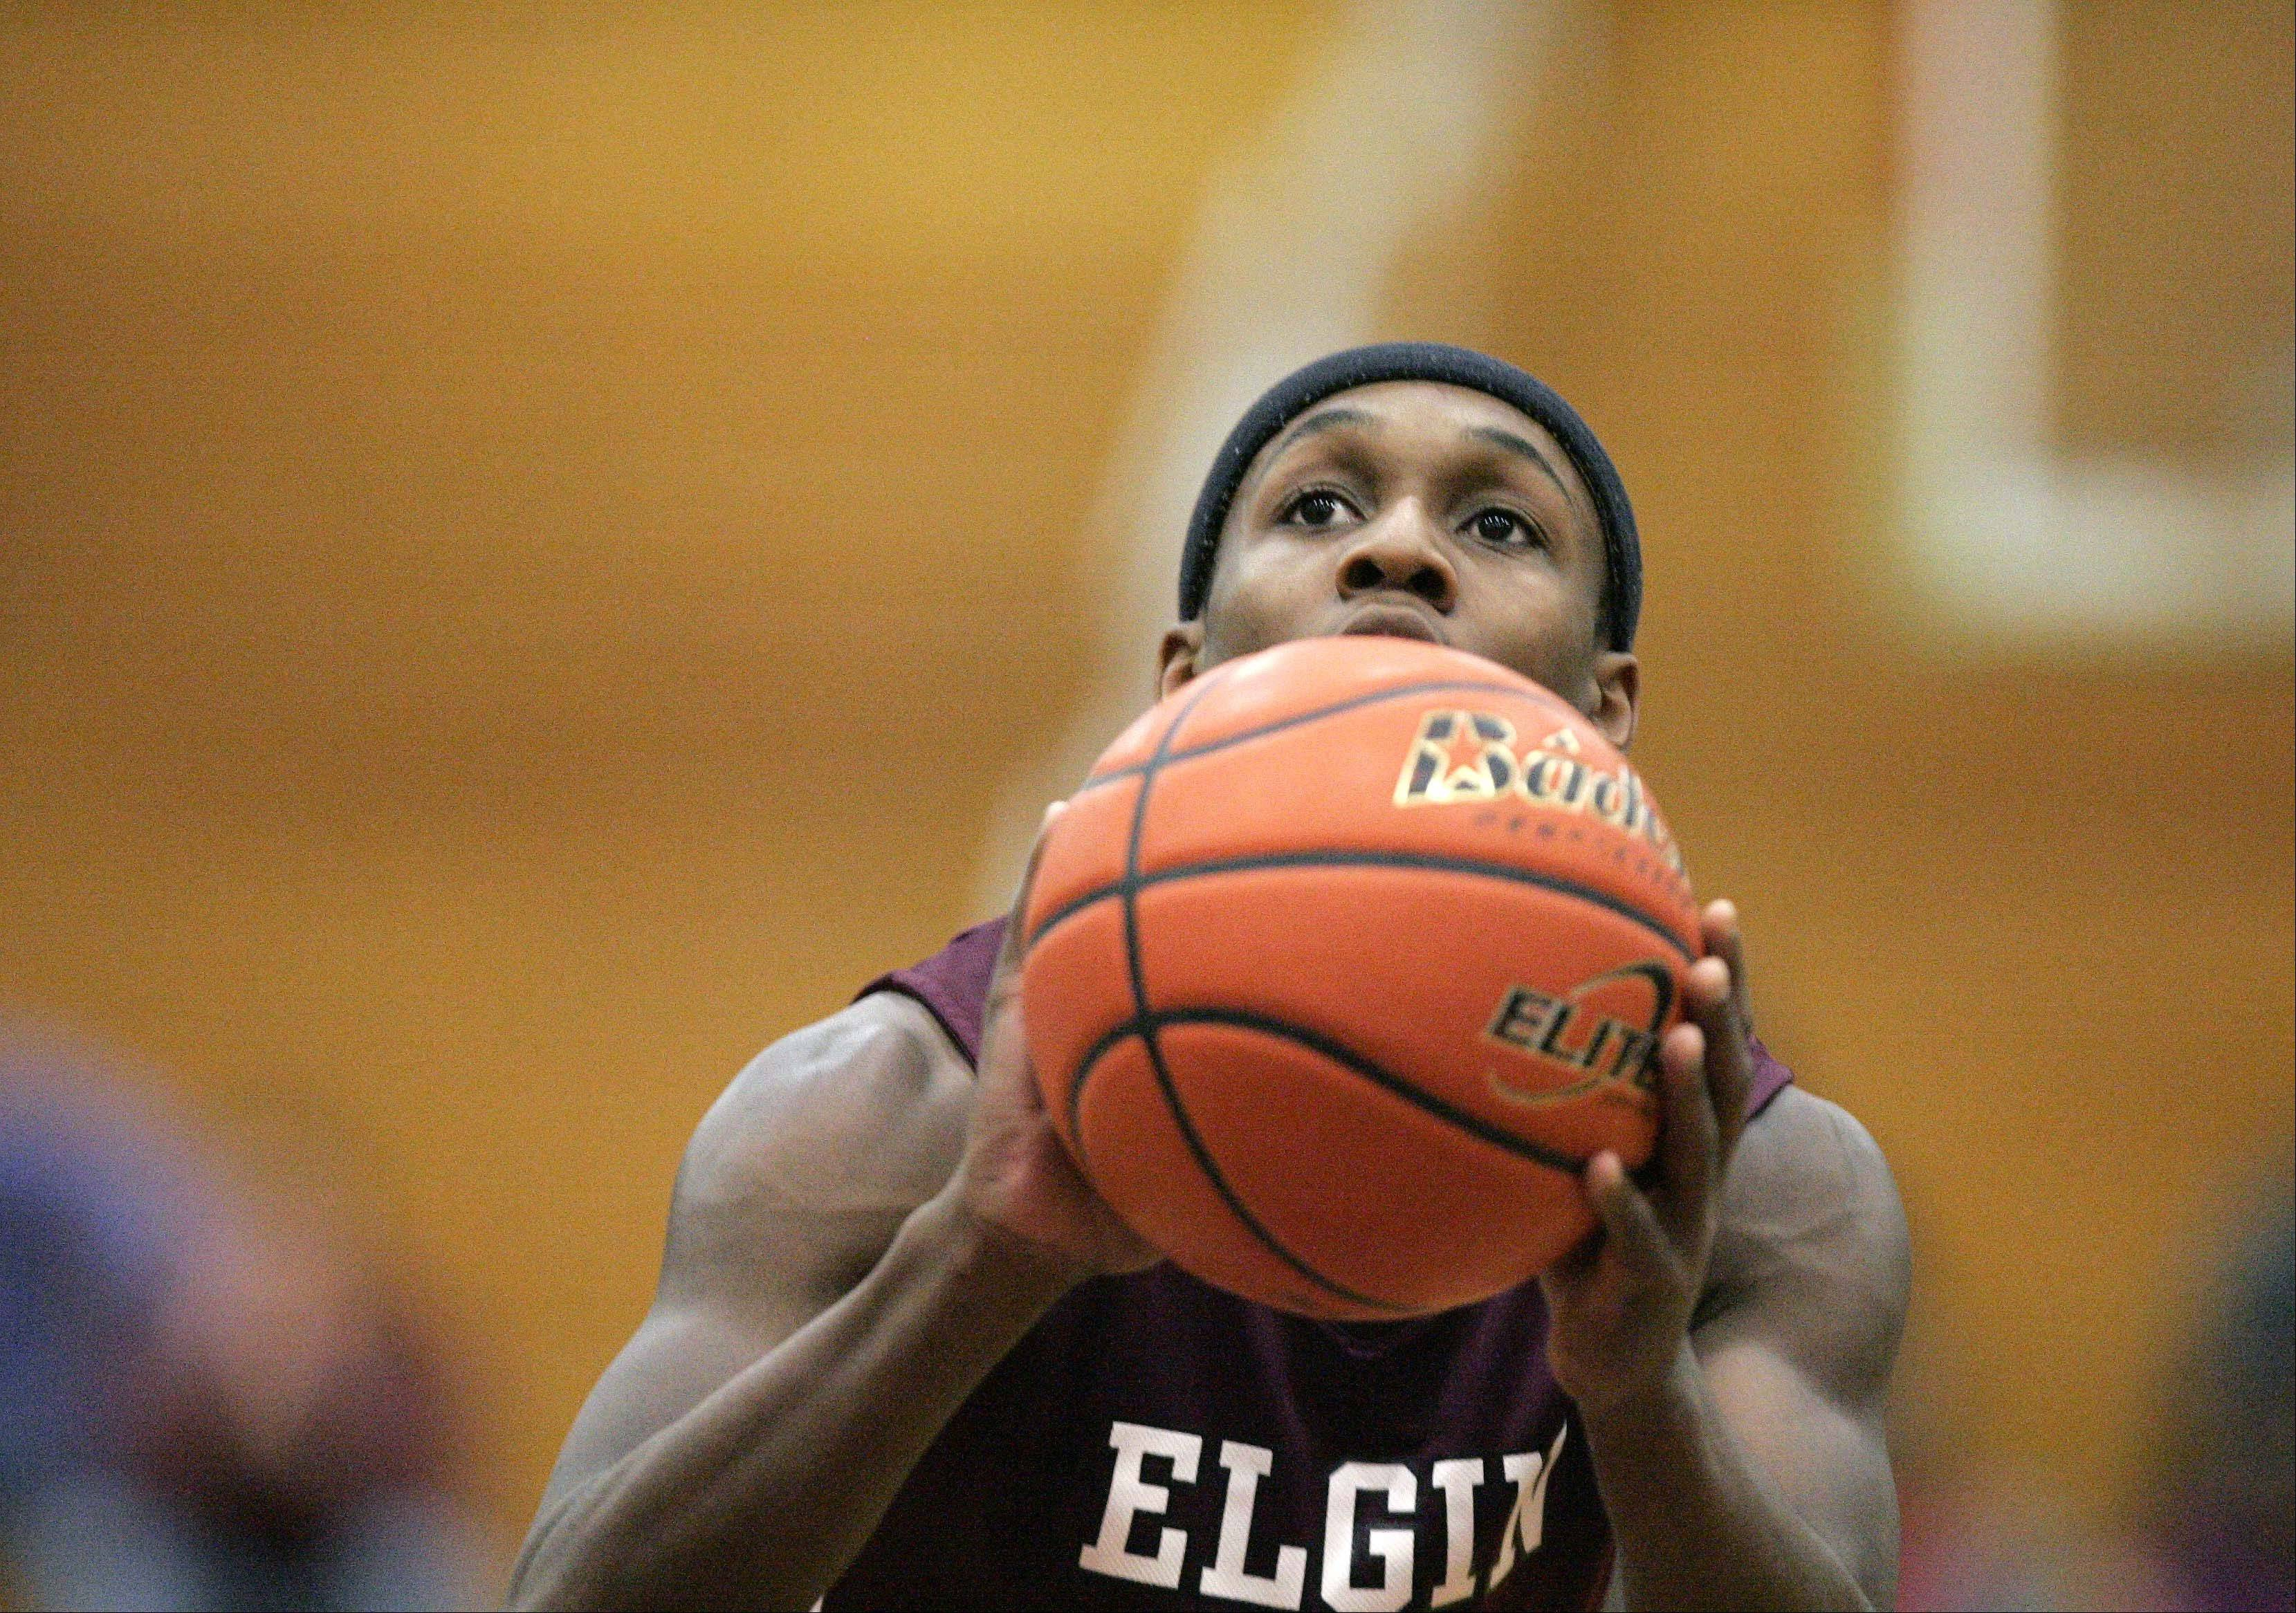 Elgin wing Arie Williams shoots a free throw against Dundee-Crown Thursday at the Elgin Holiday Tournament.